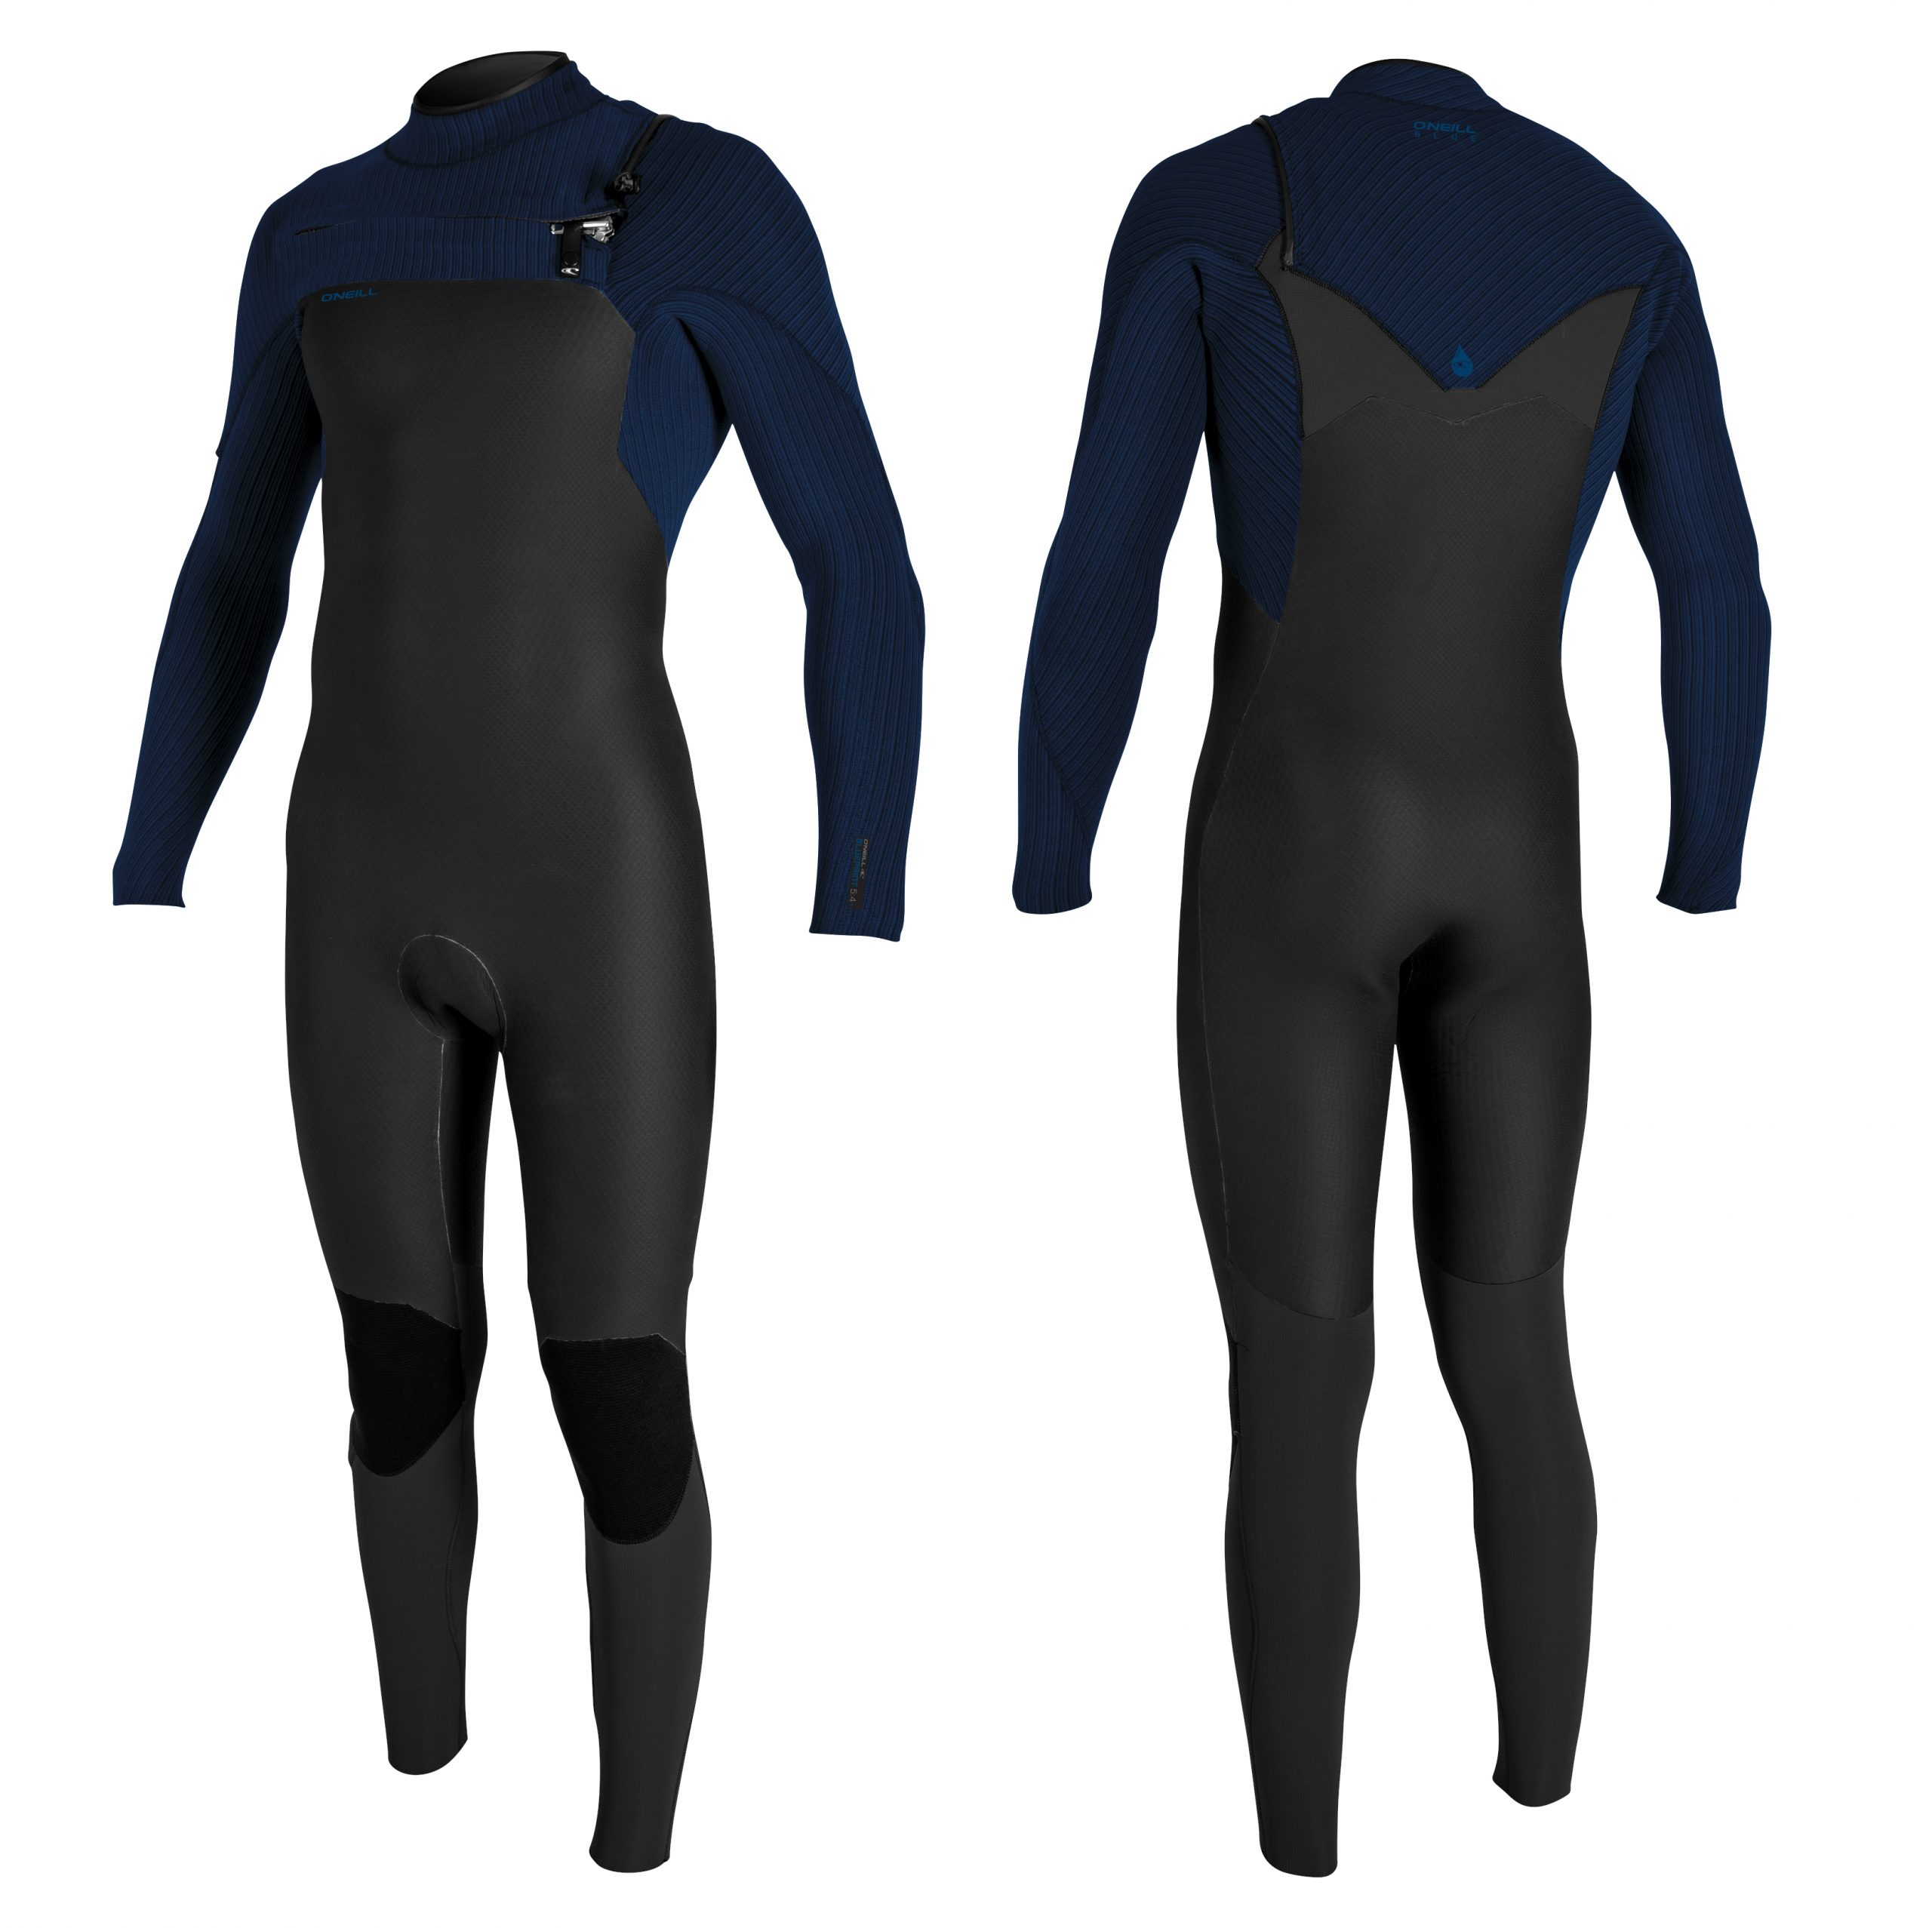 O'Neill SS21 Wetsuits